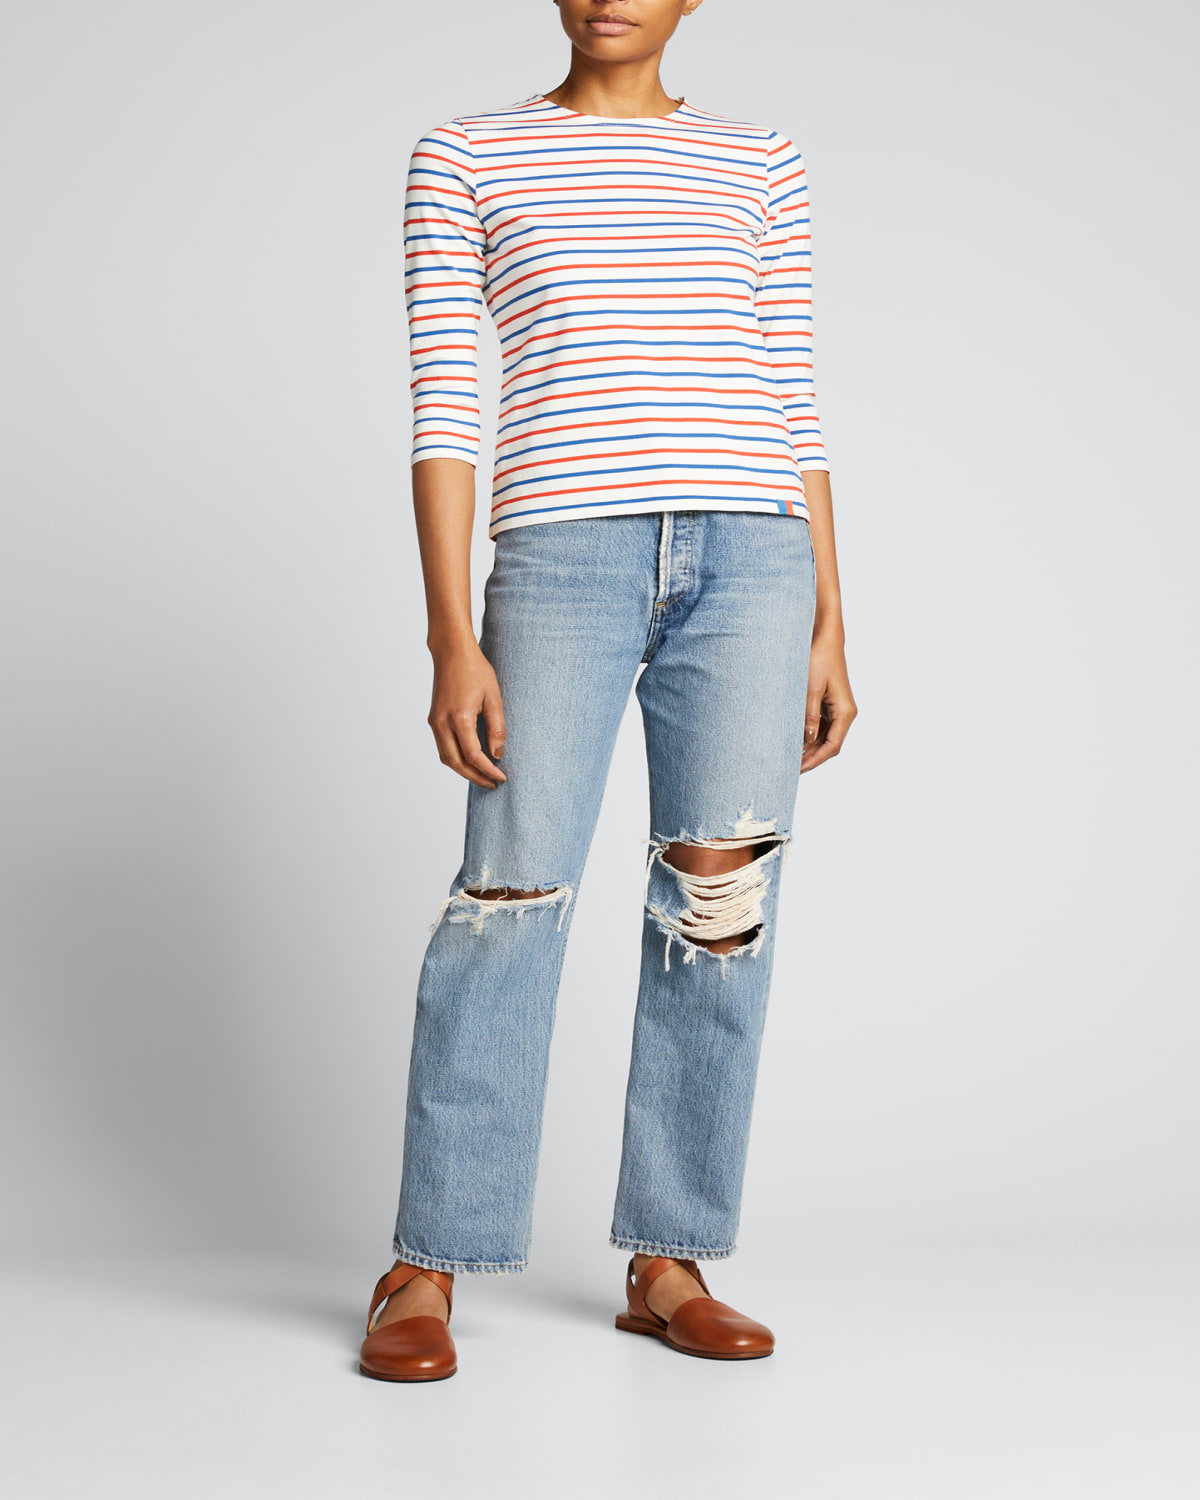 Keira Archer Heights Trouser Jeans